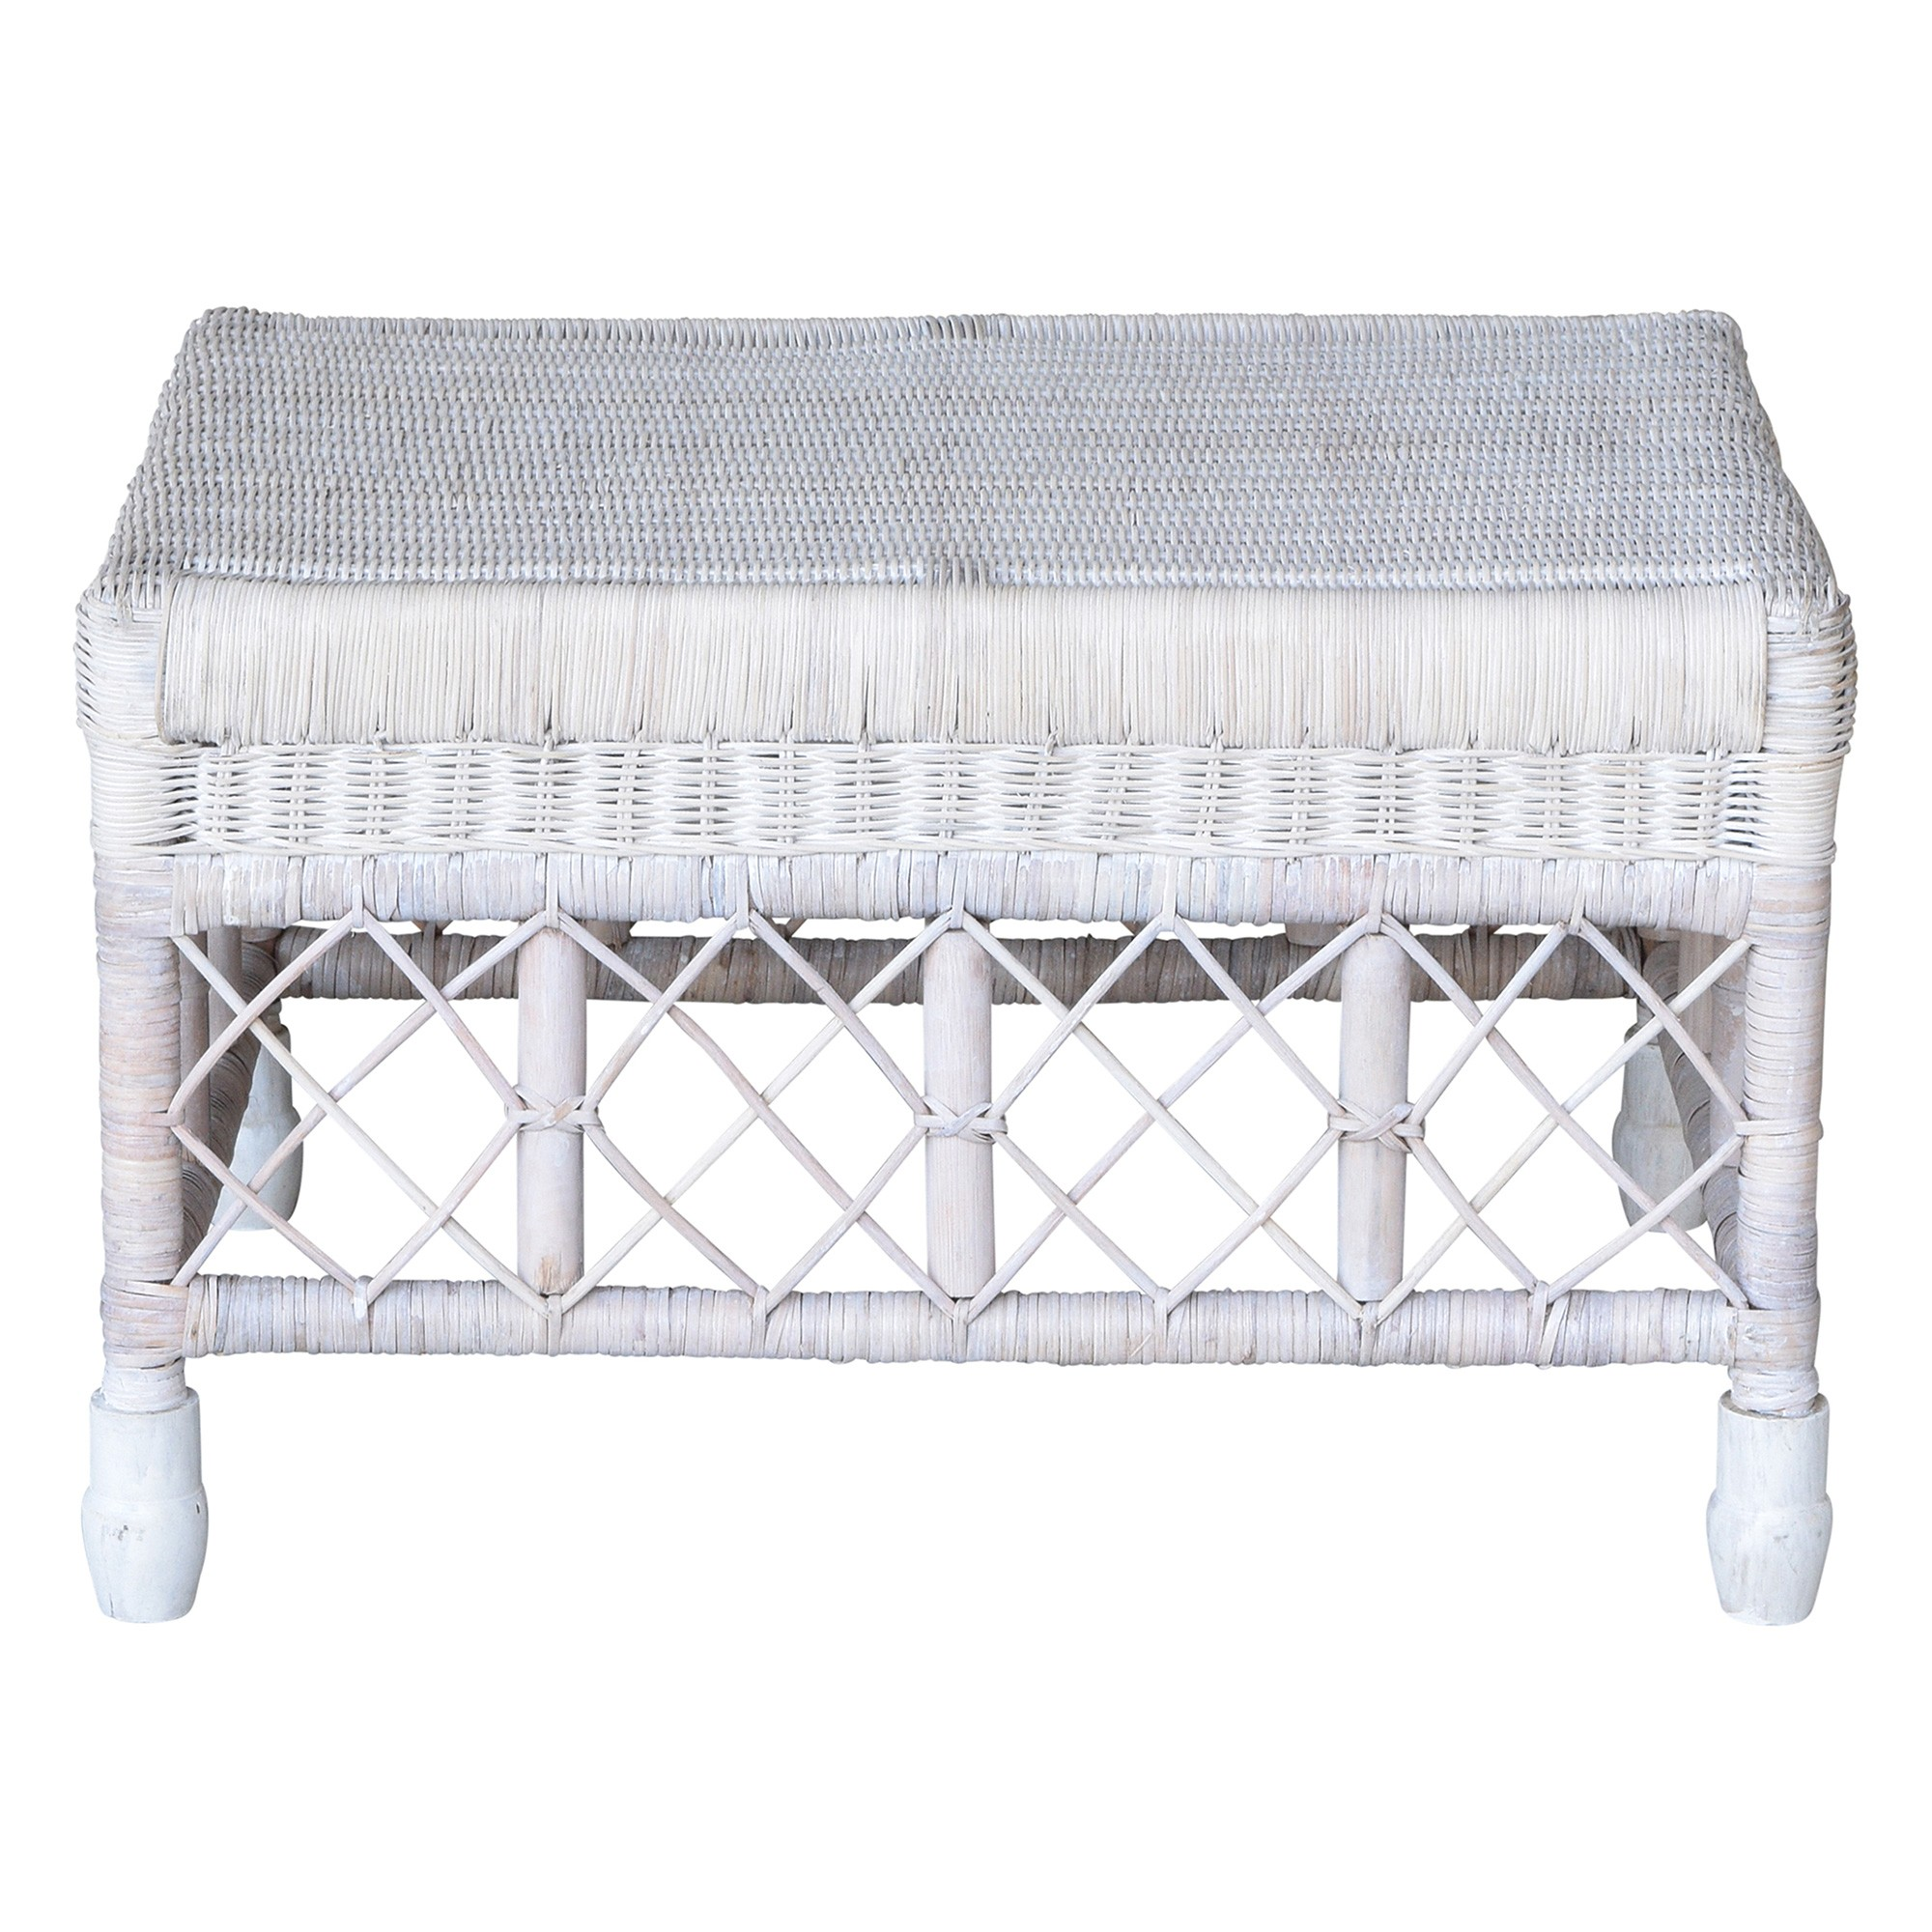 Savannah Lattice Rattan Ottoman / Footstool, White Wash